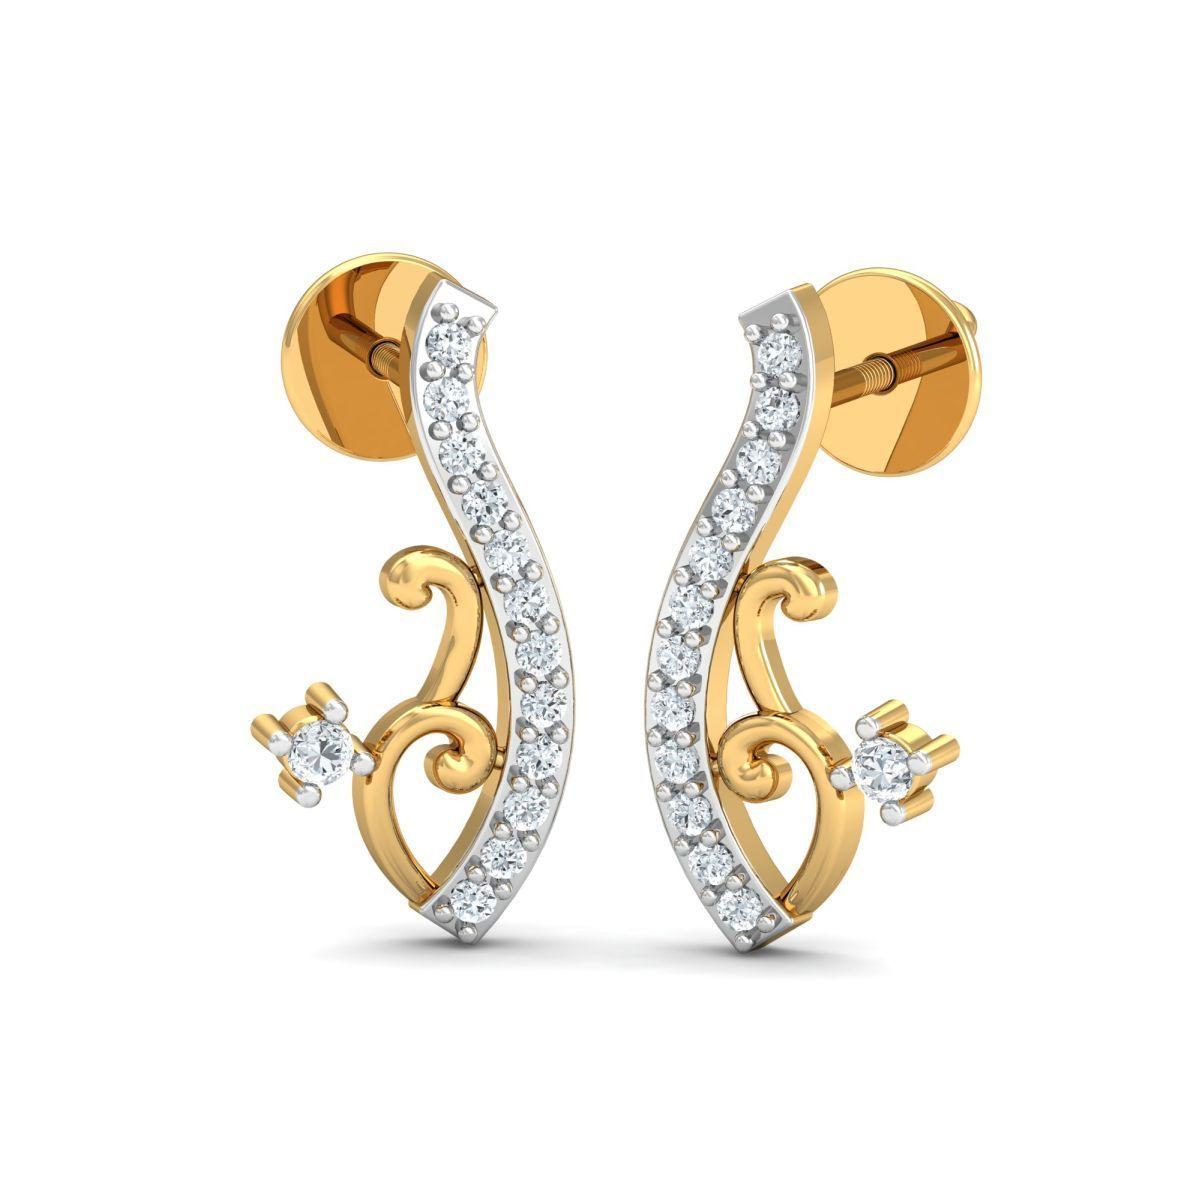 Diamoire Jewels 18kt Yellow Gold 0.10ct Pave Diamond Infinity Earrings II SL2LH